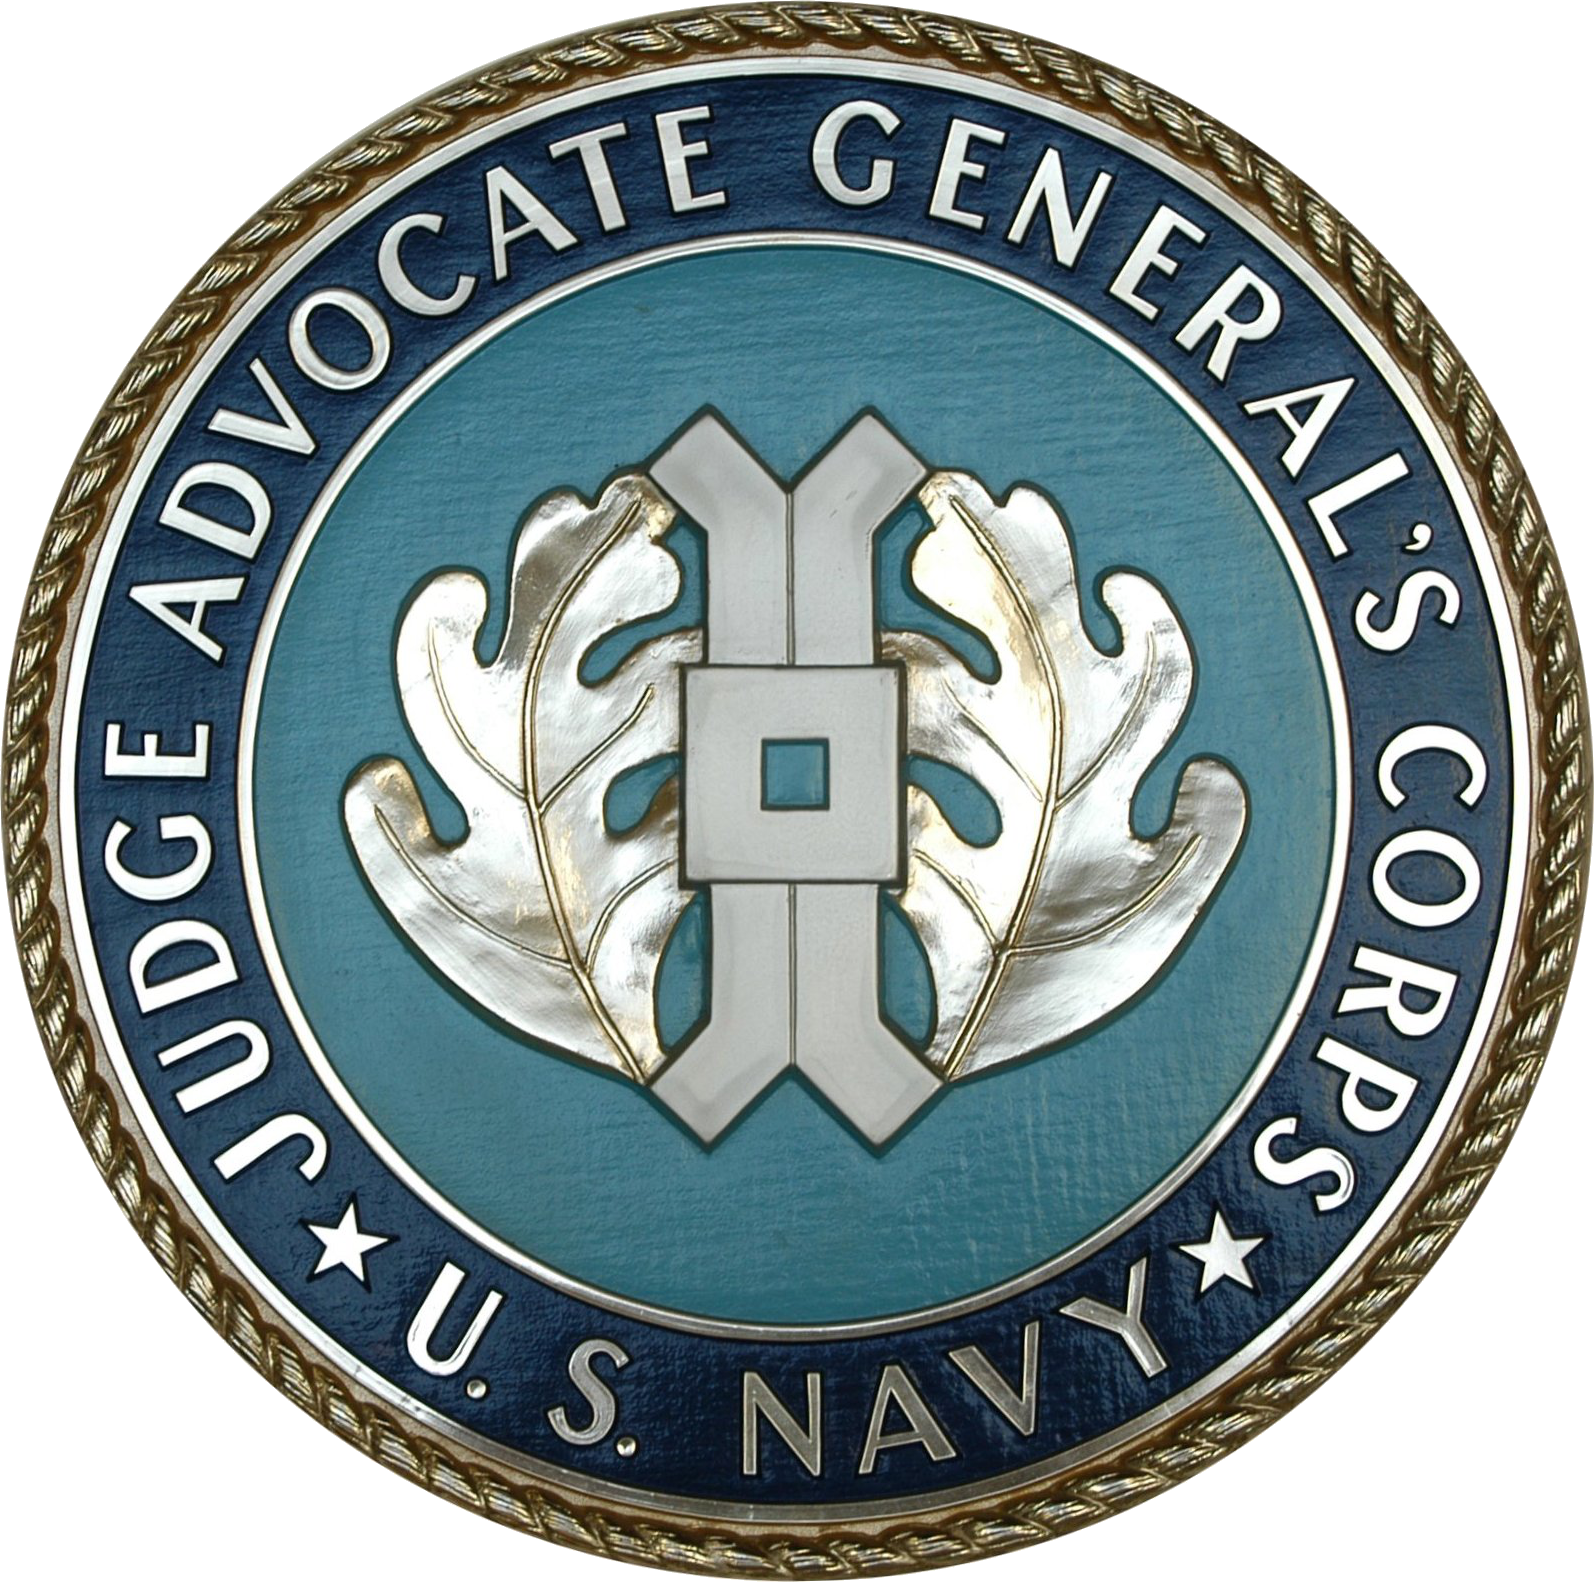 Judge Advocate General's Corps, U S  Navy - Wikipedia